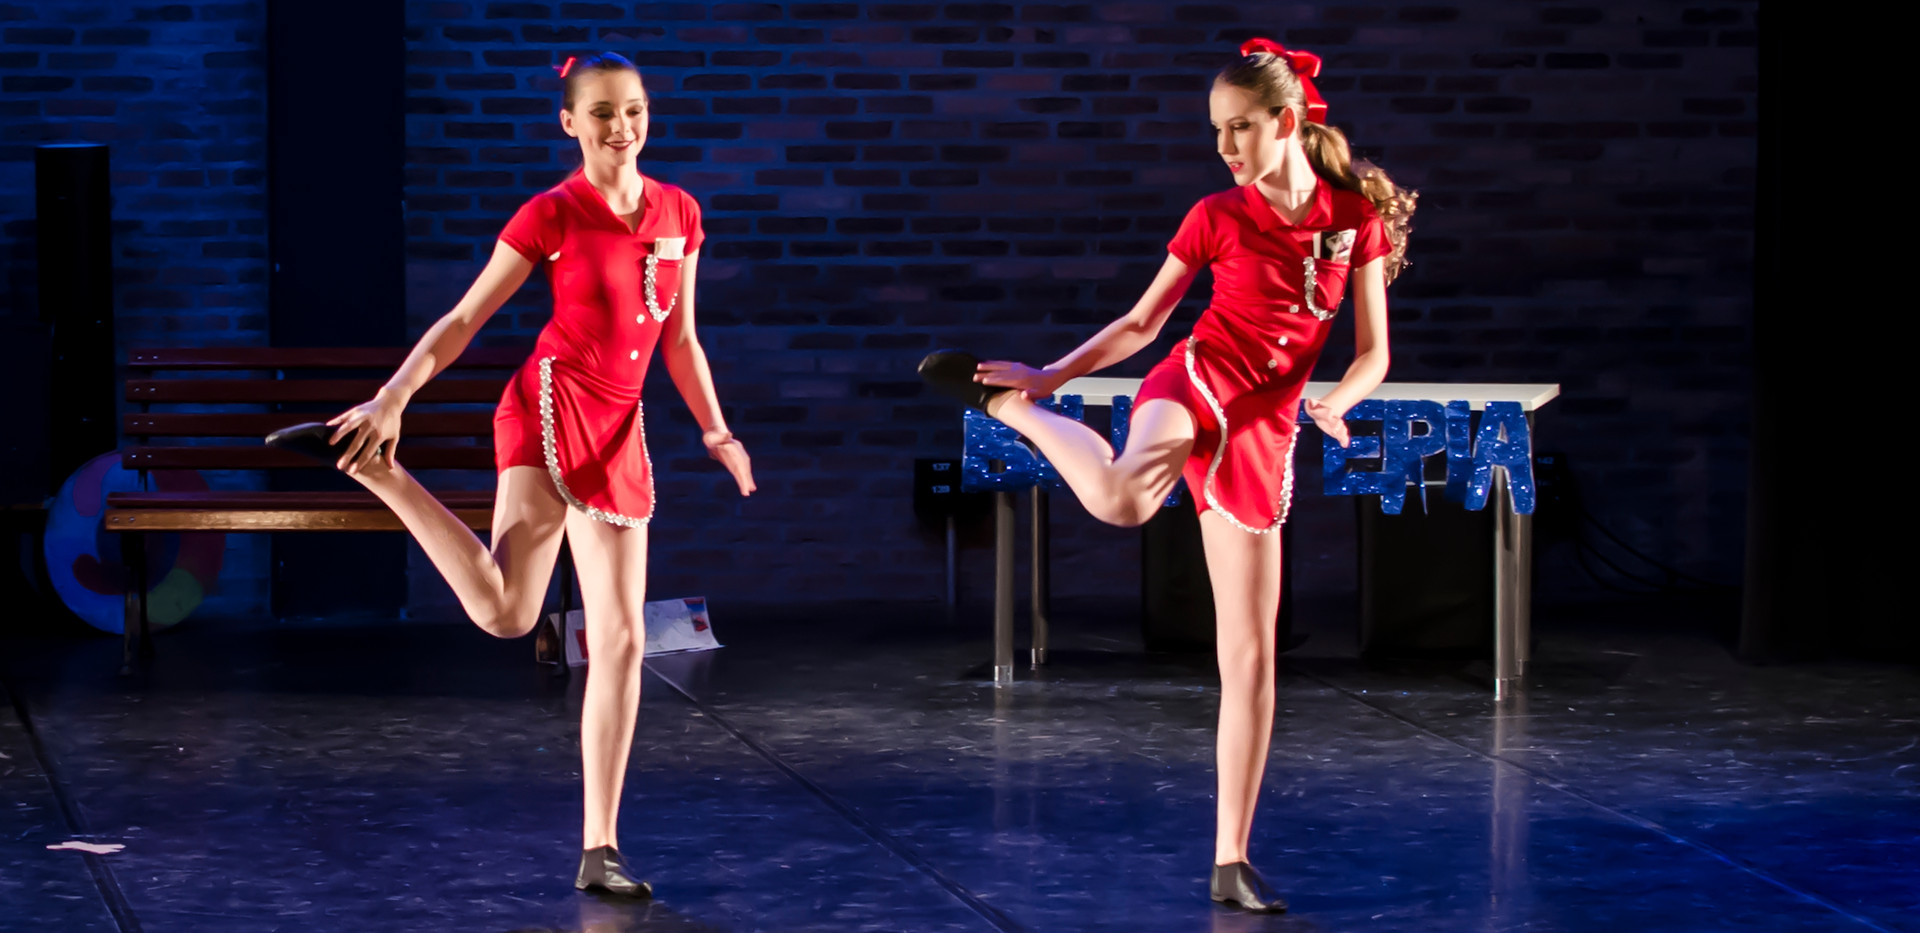 Duo Jazz Dance